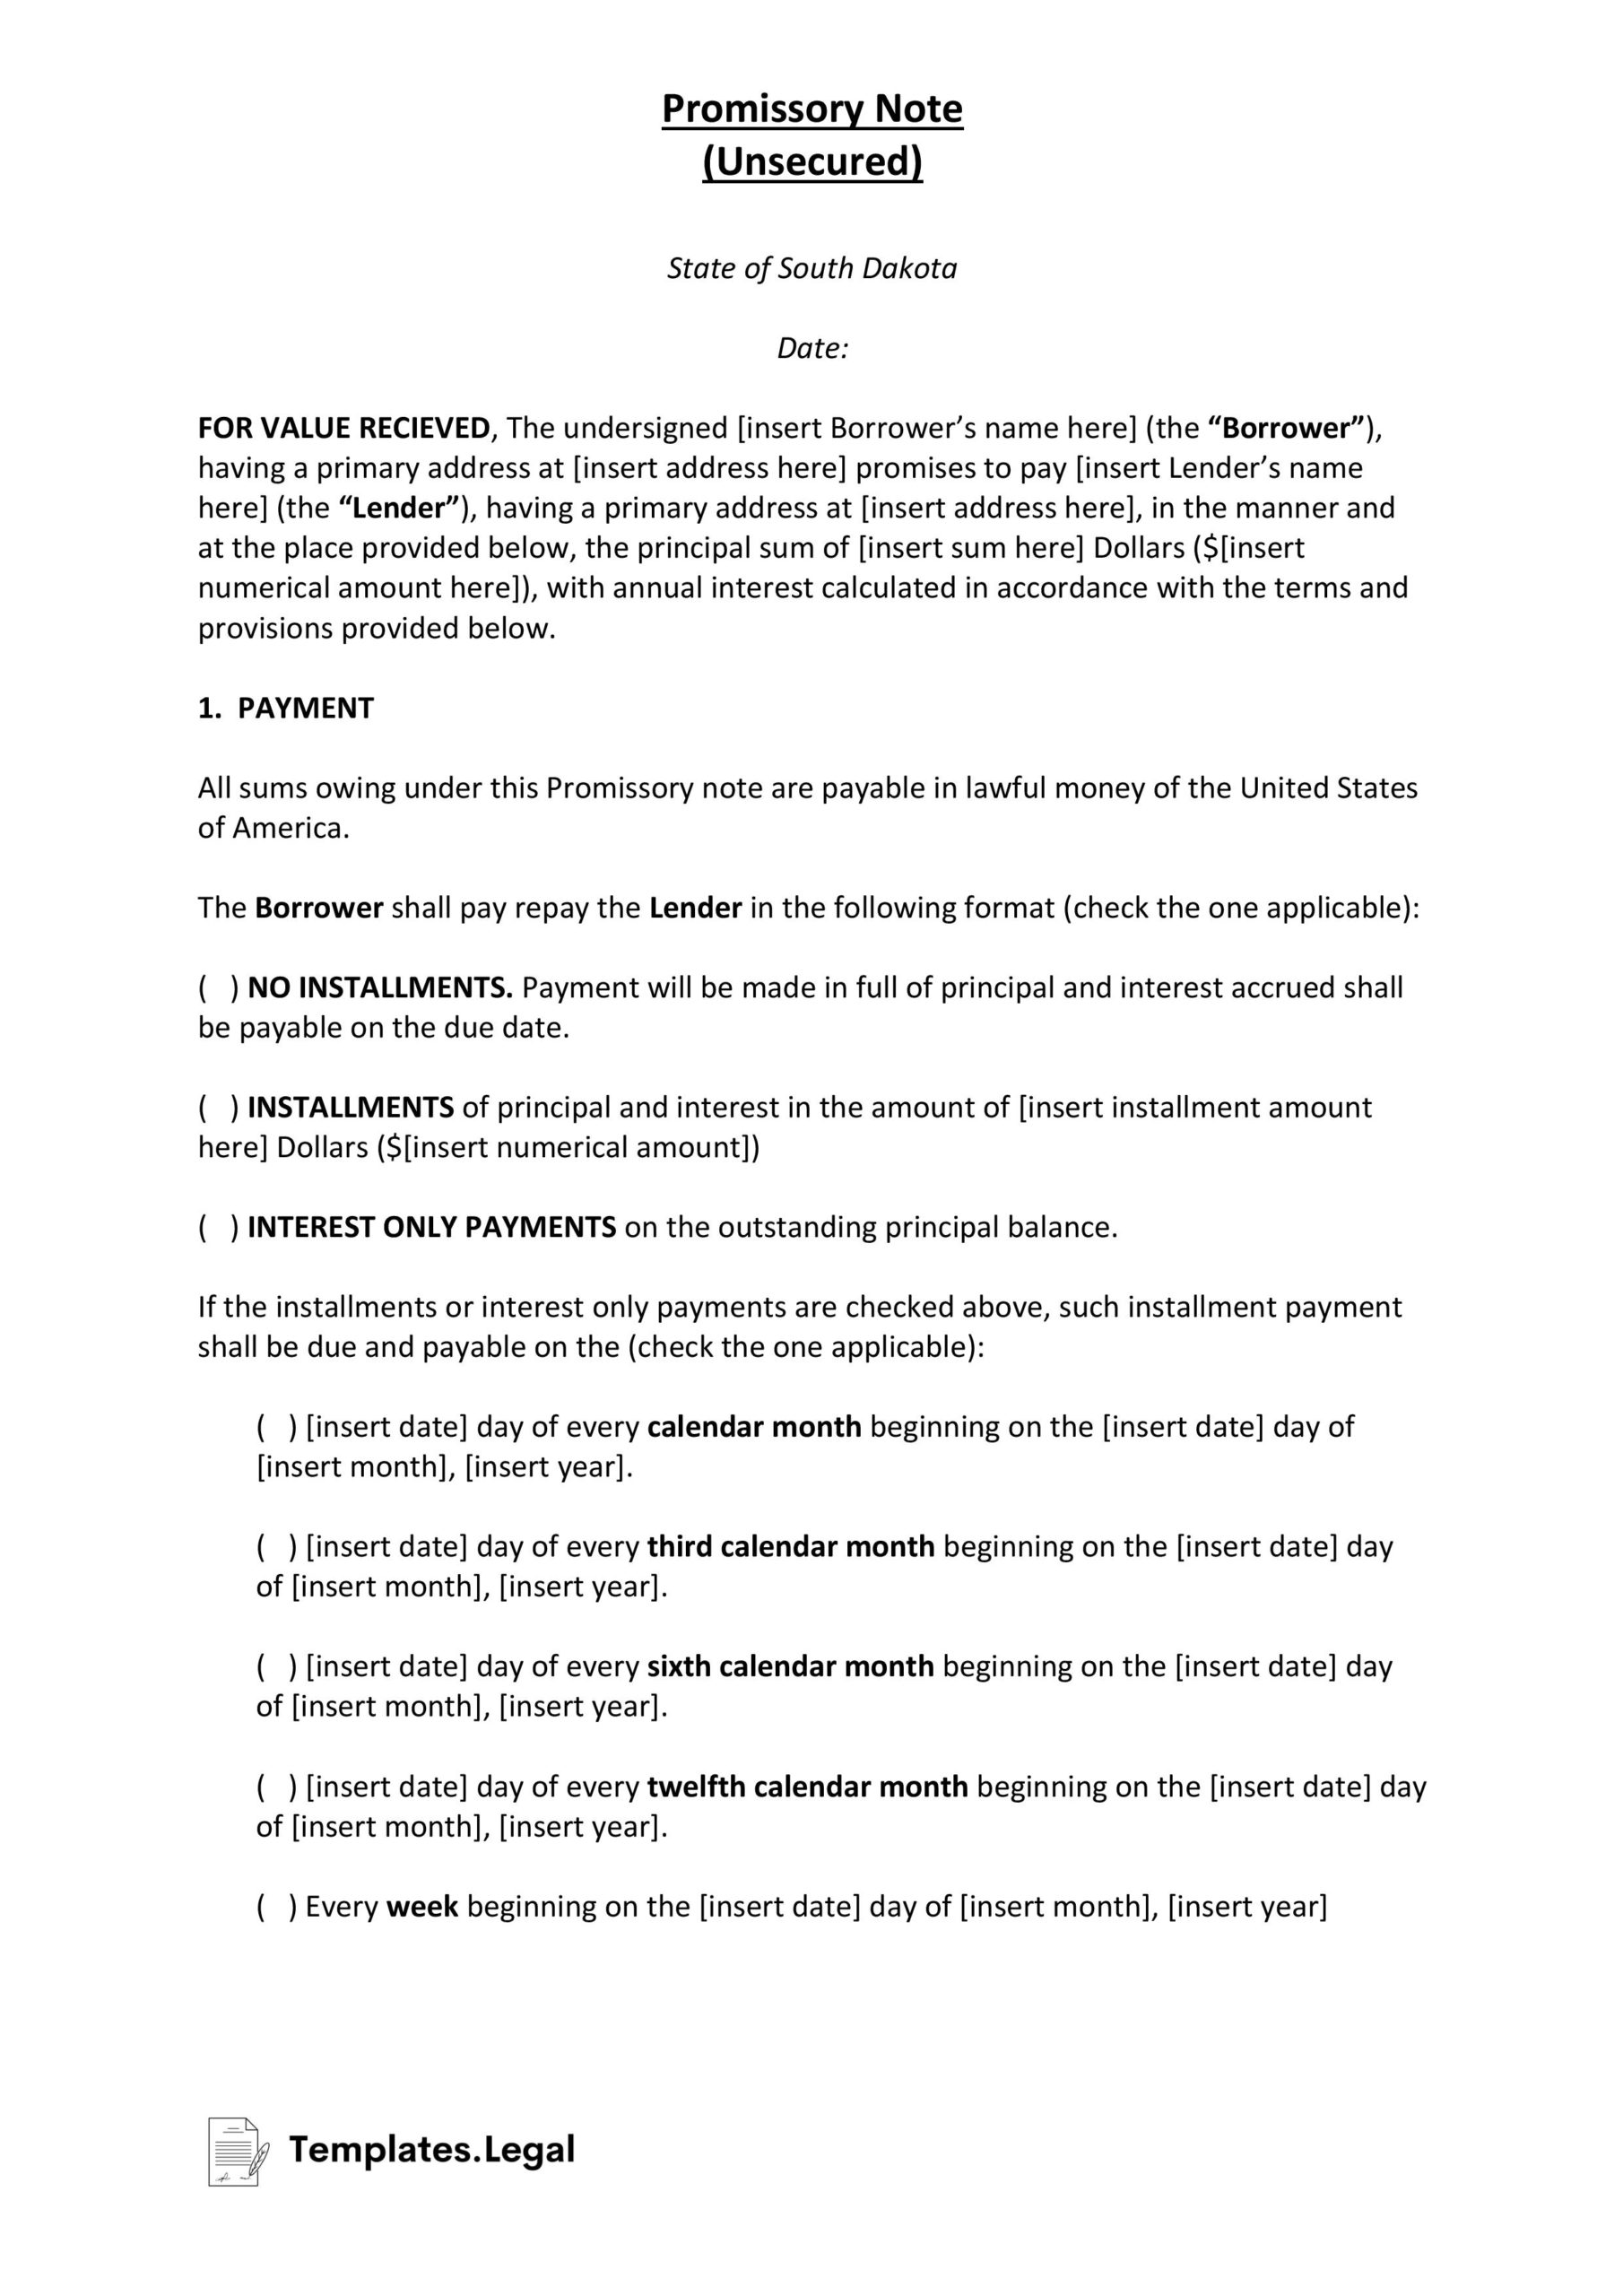 South Dakota Unsecured Promissory Note - Templates.Legal